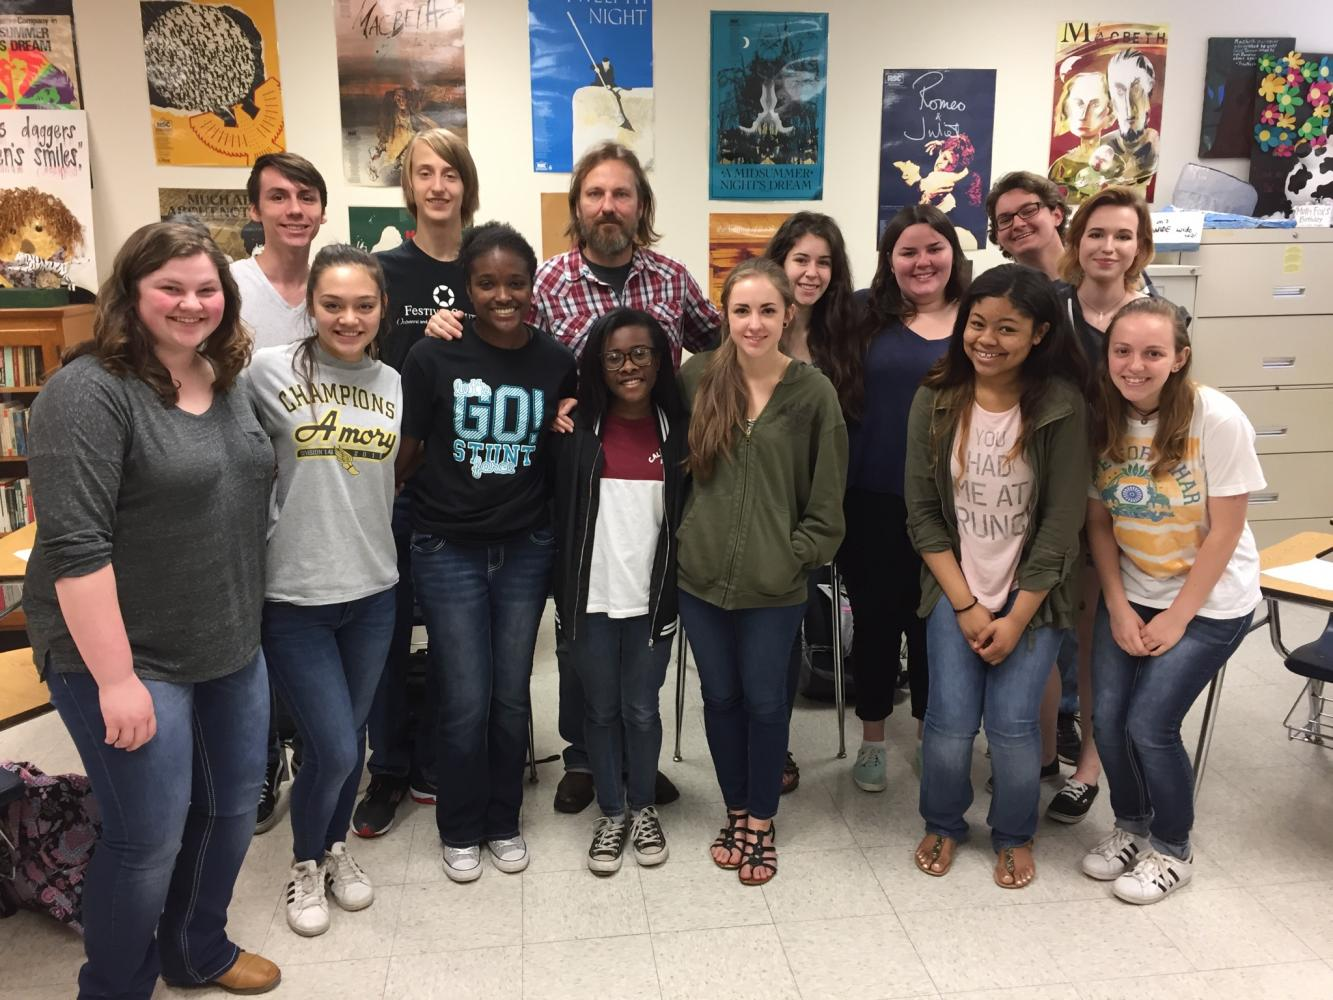 The first class of Creative Writing students pose with Micheal Farris Smith during his visit to class.